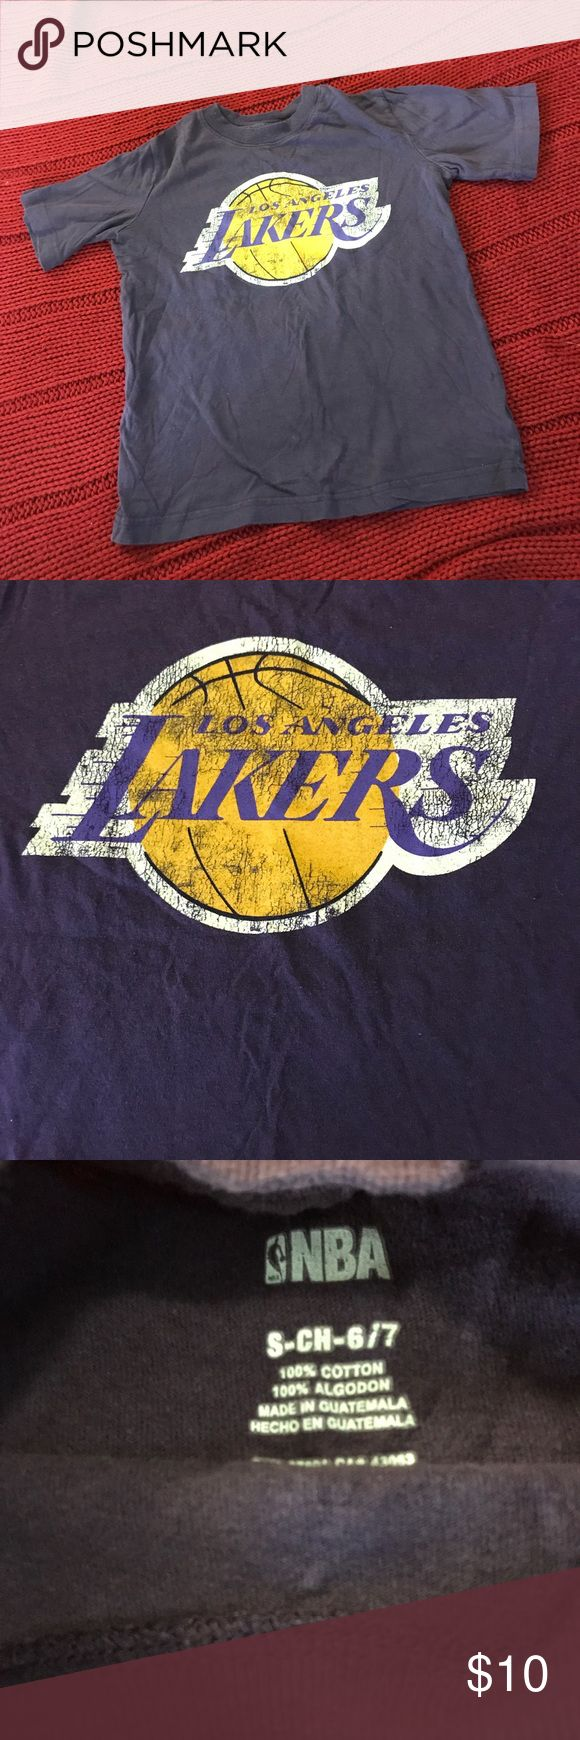 Los Angeles Lakers Shirt size small Purple vintage look Los Angeles Lakers tshirt . Youth size small. Worn once to a game. Lakers Shirts & Tops Tees - Short Sleeve